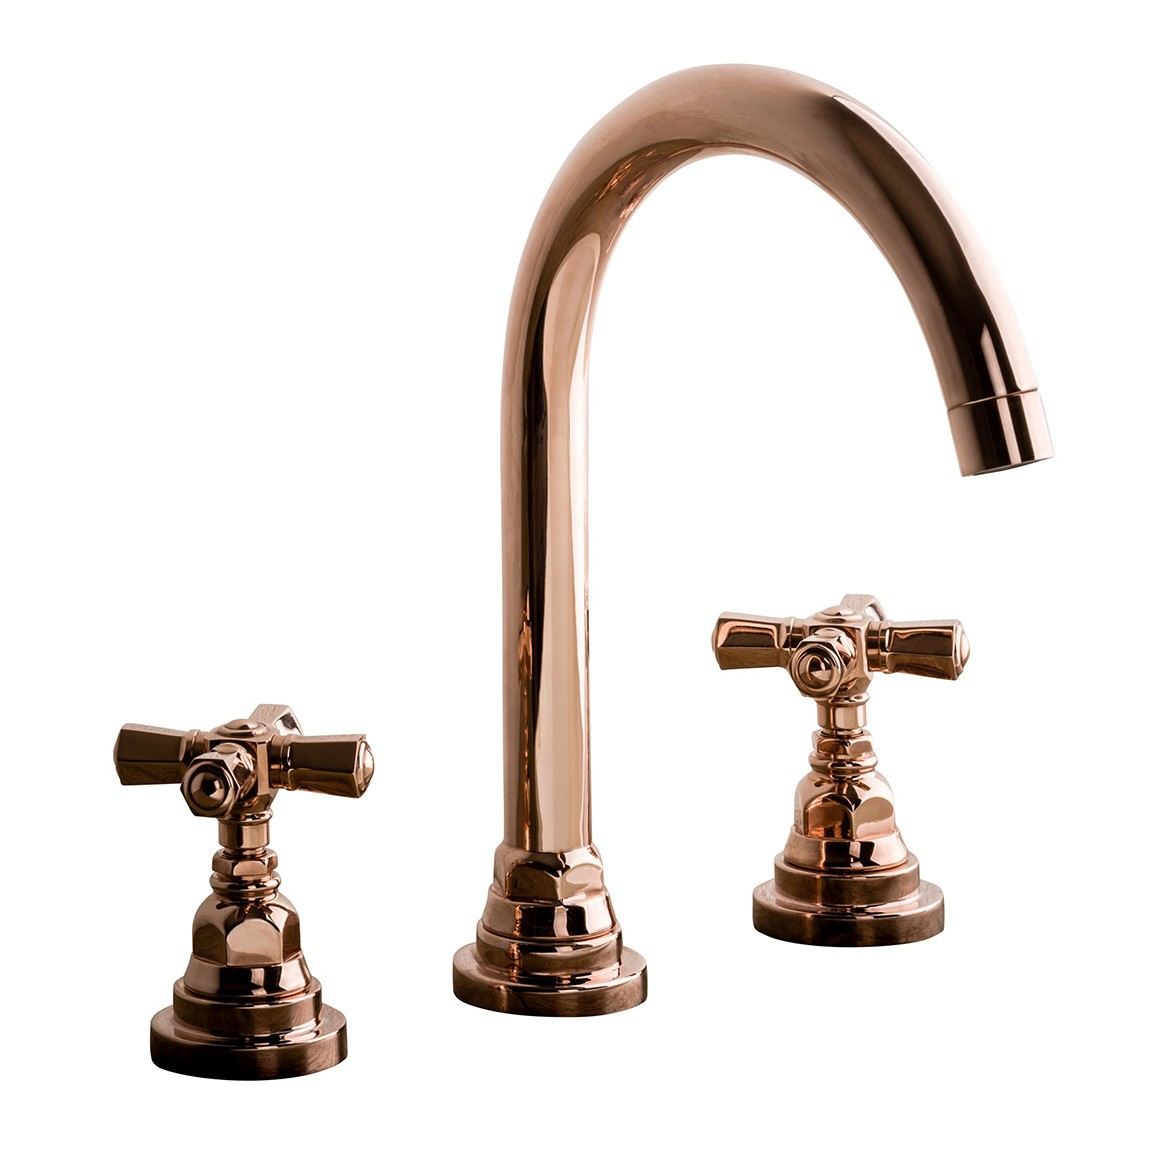 Wash Basin Mixer Nicolazzi Luxury Taps